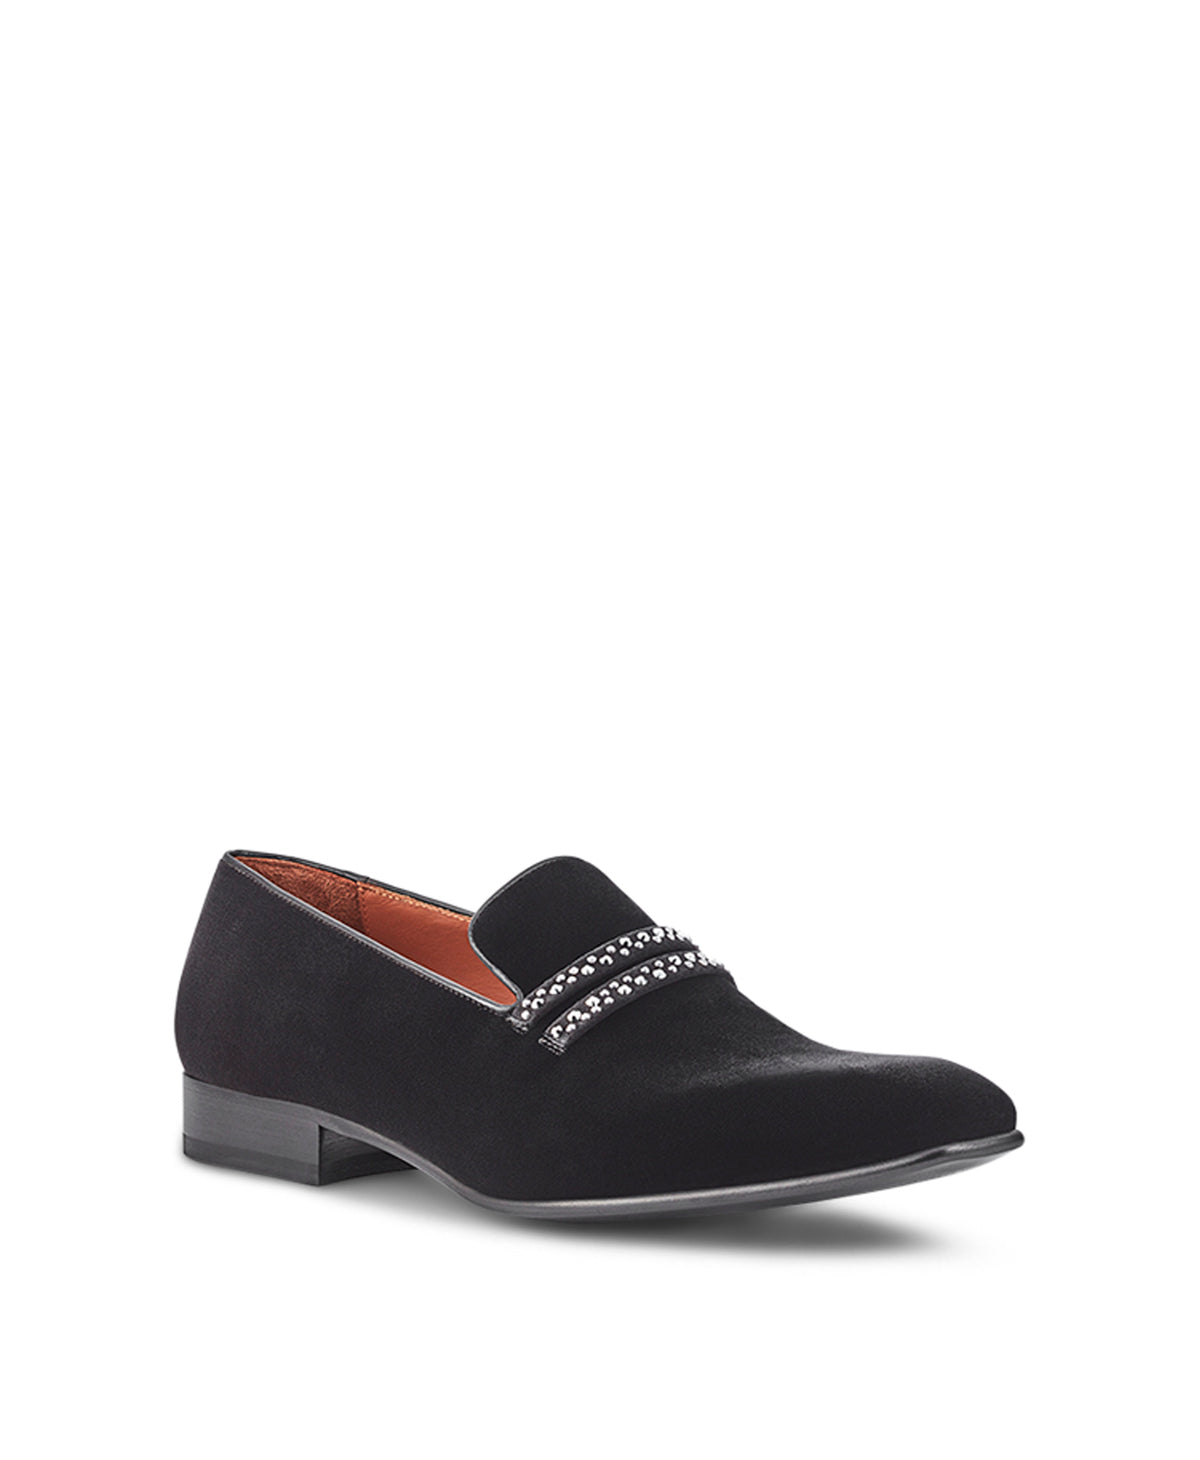 Men's Black Velvet Loafers With Crystal Detail Malone Souliers